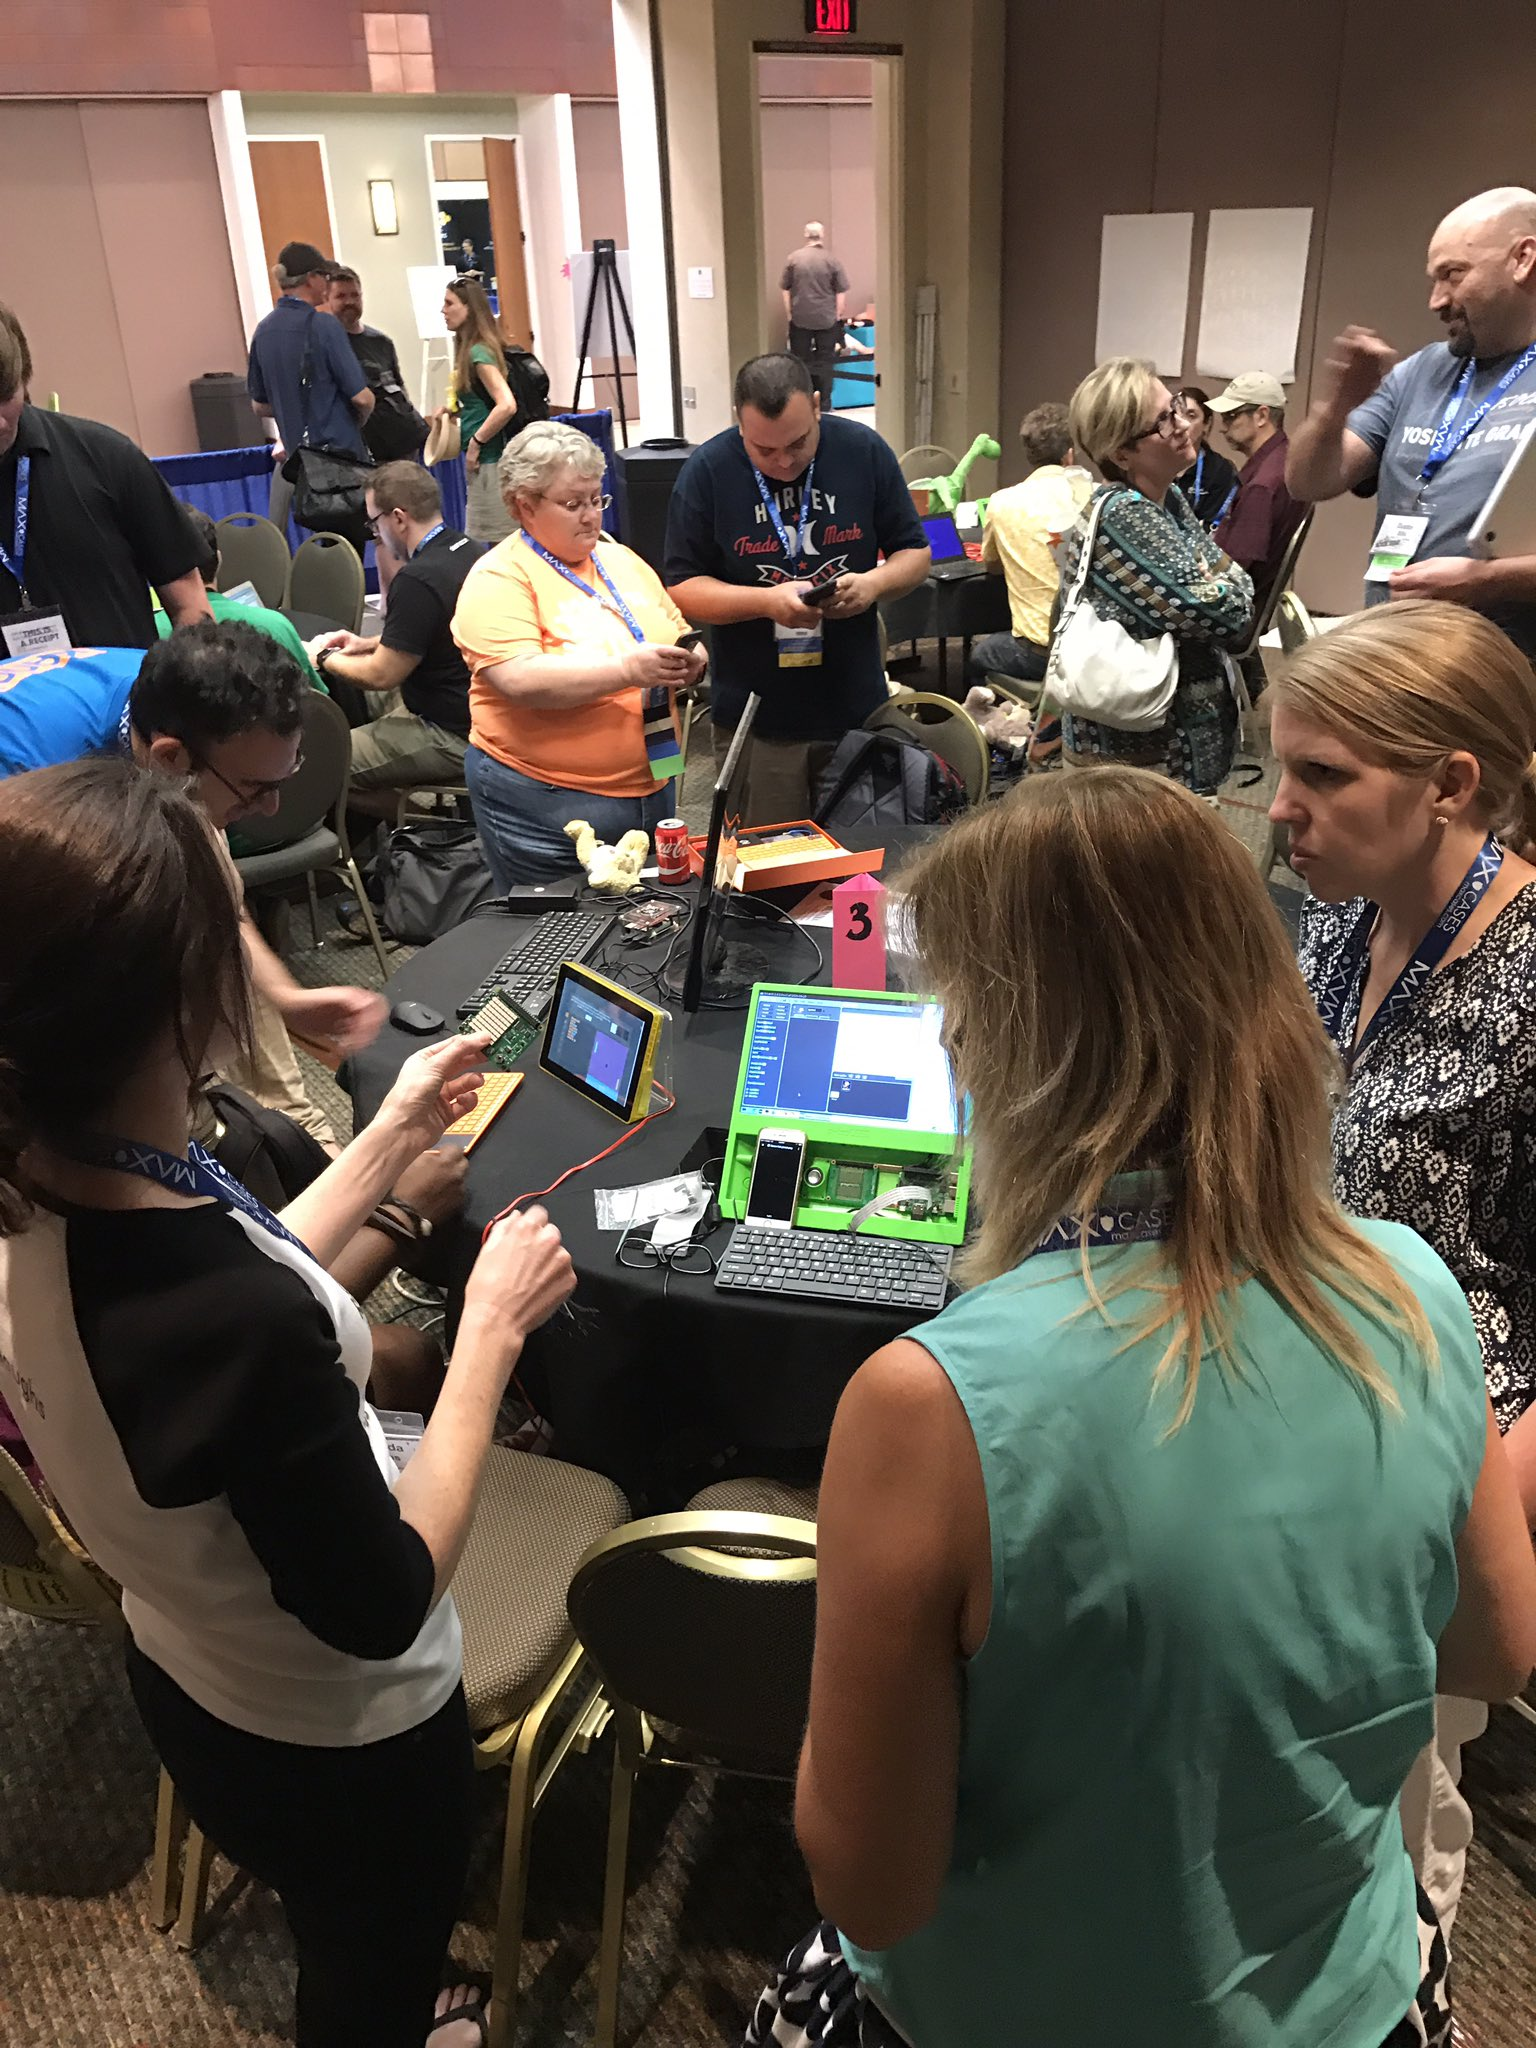 Impromptu @Raspberry_Pi meet-up. Love the energy and enthusiasm of all of these people. #cue17 https://t.co/Zy10VZzQKX